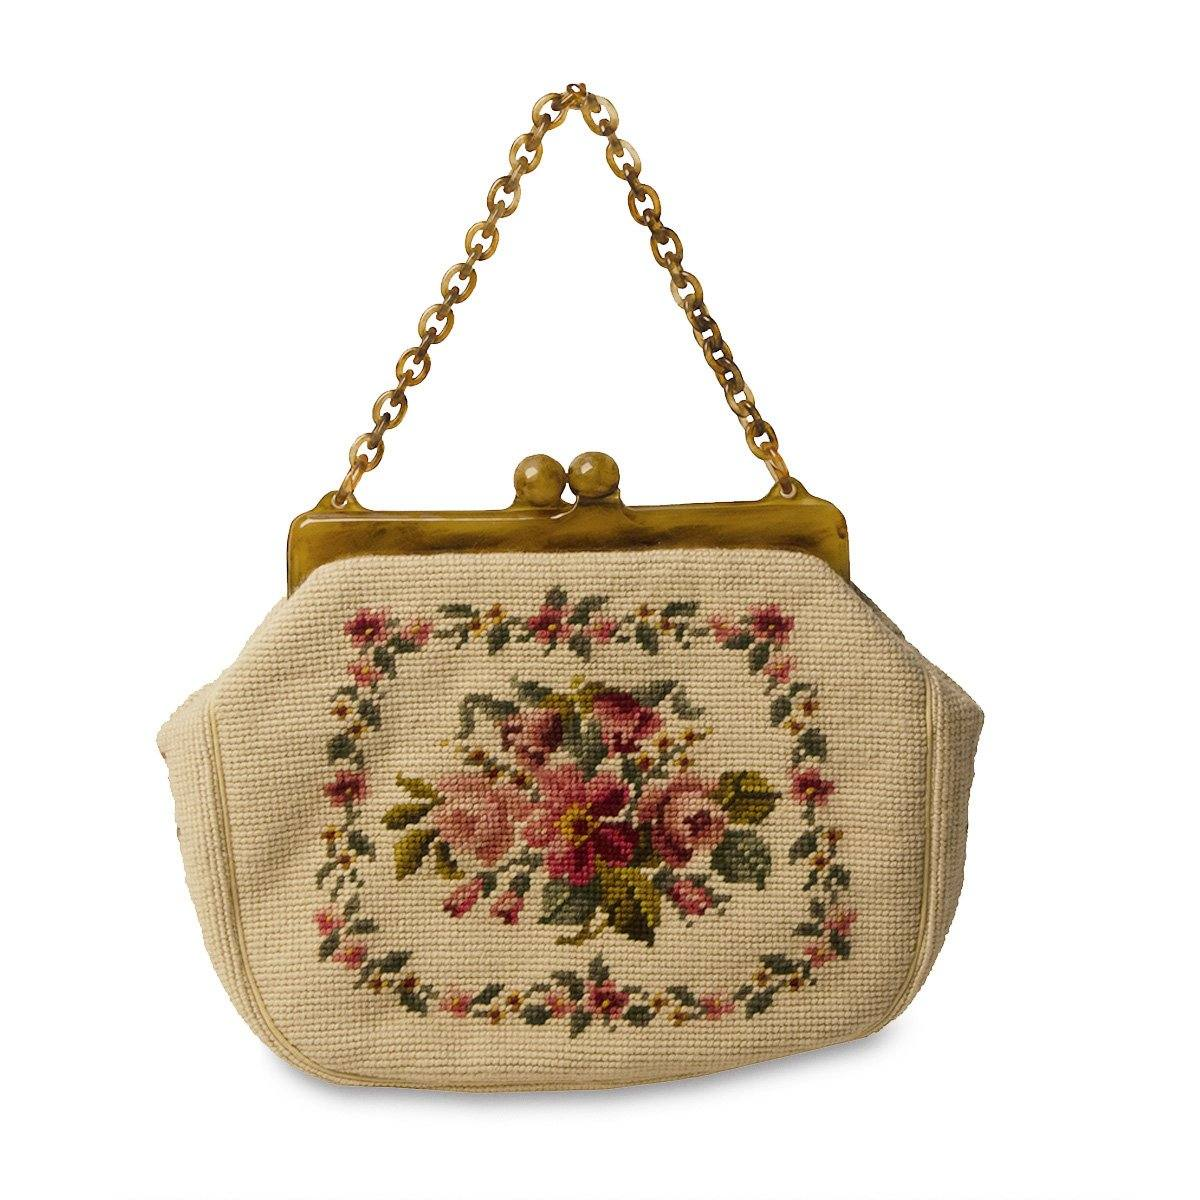 Rare Maud Hundley 1950s Needlepoint Handbag, Cream with Floral Design